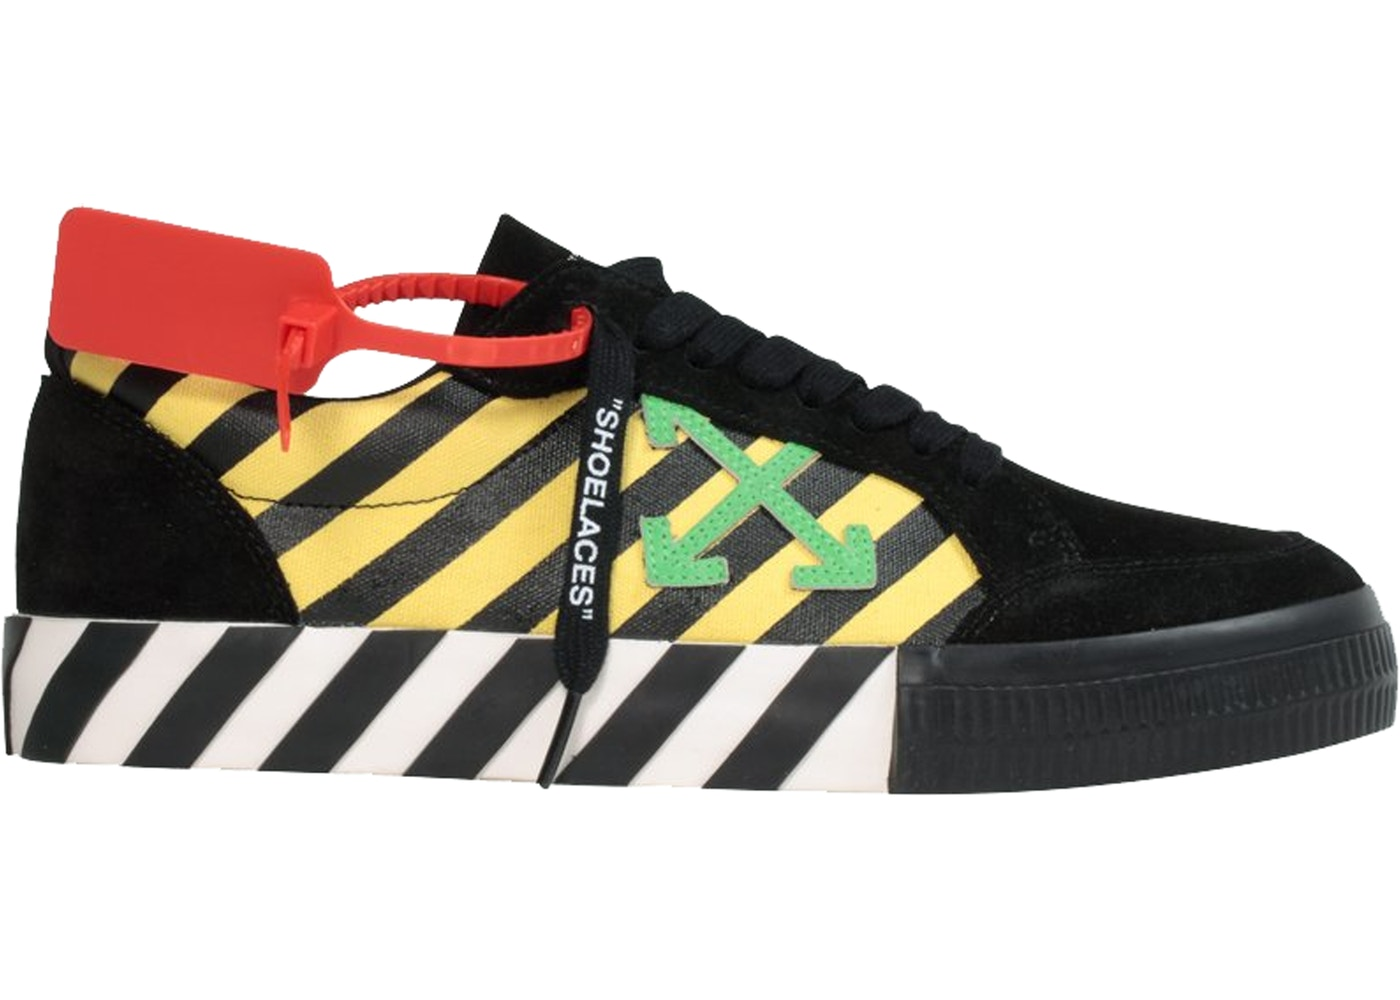 e1dd488c Sell. or Ask. Size: 45. View All Bids. Off-White Vulc Low Black ...